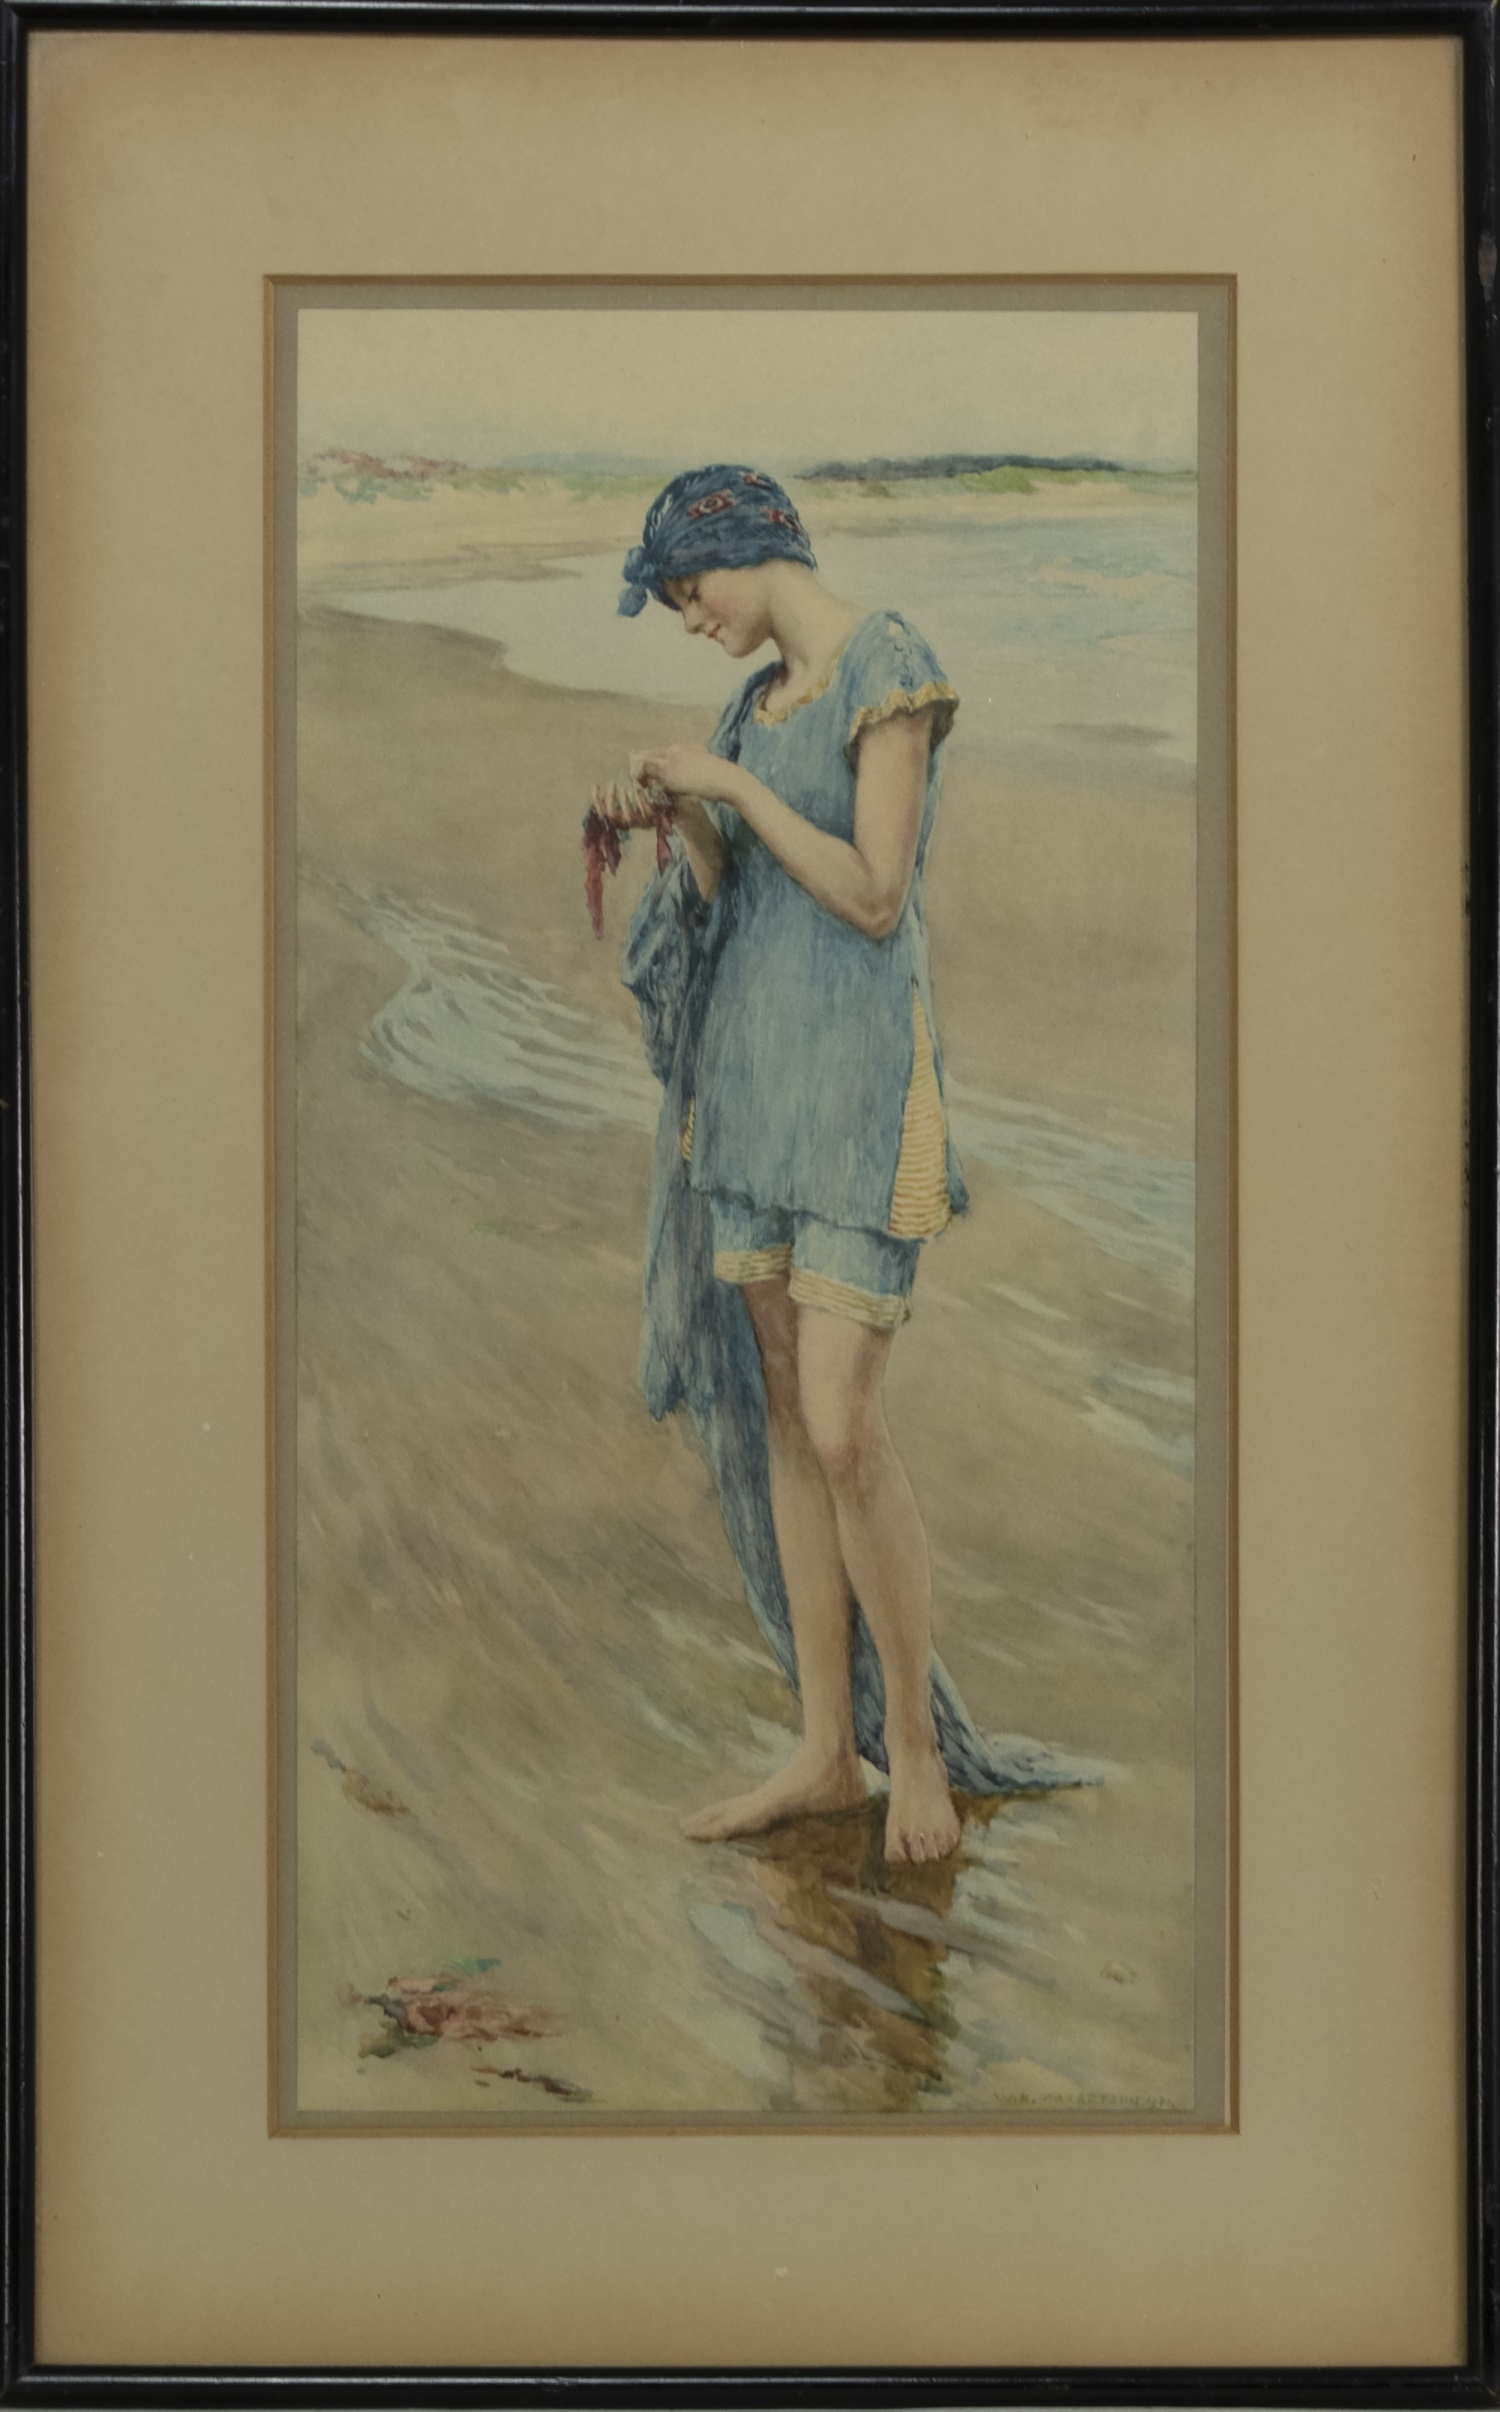 BEACH DAY, A PRINT AFTER WILLLIAM HENRY MARGETSON